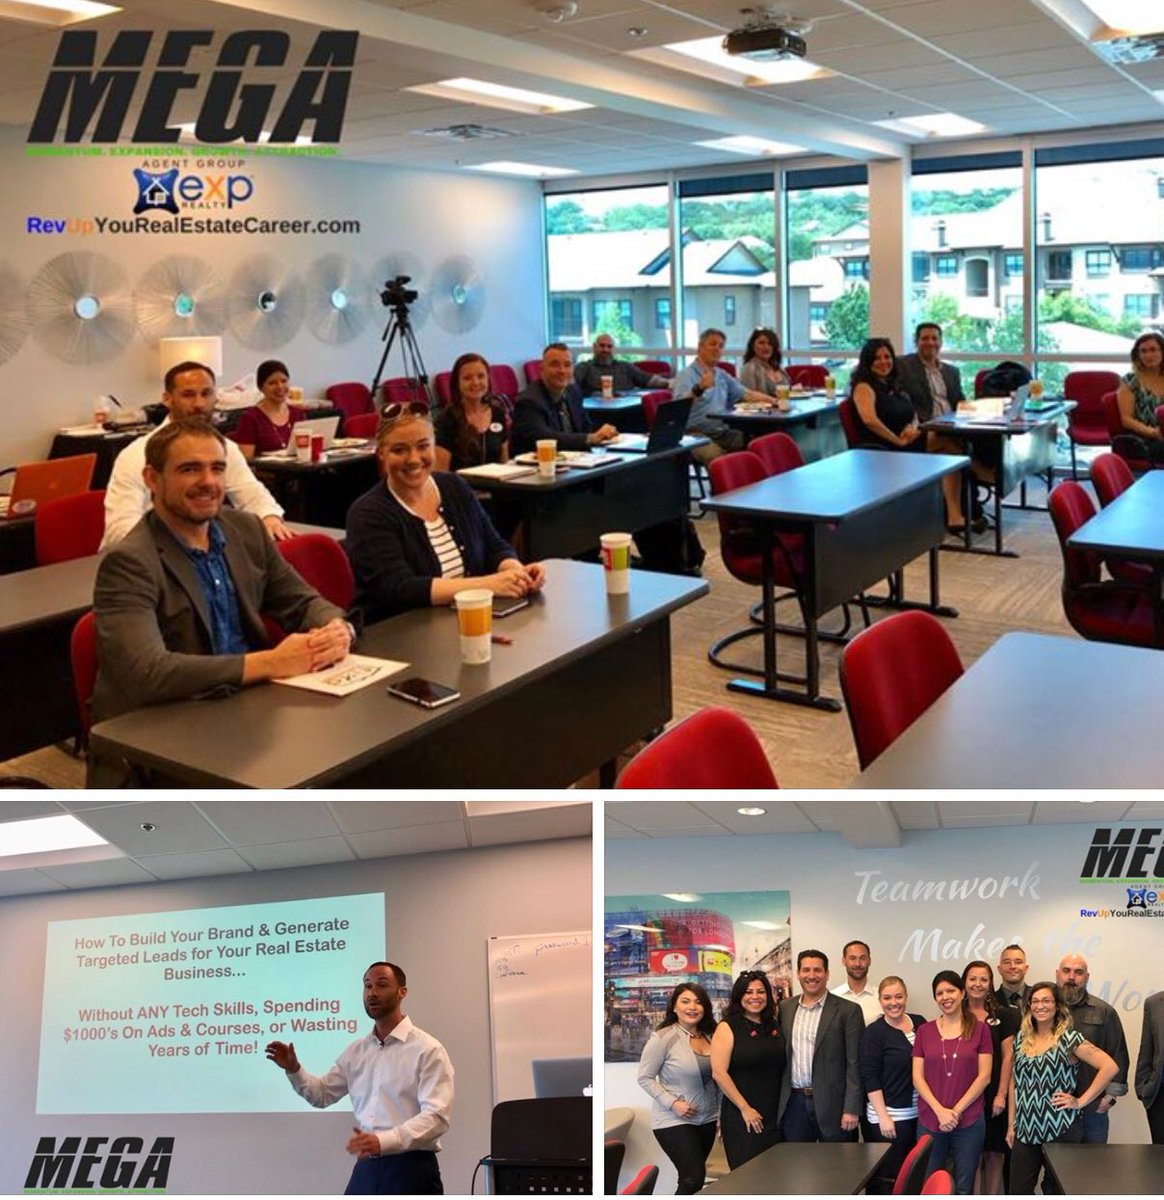 Thank you Jeremy McGilvrey for the awesome info today! Really great stuff... we enjoyed it & cant wait to implement it! #MEGAagentGroup #eXp